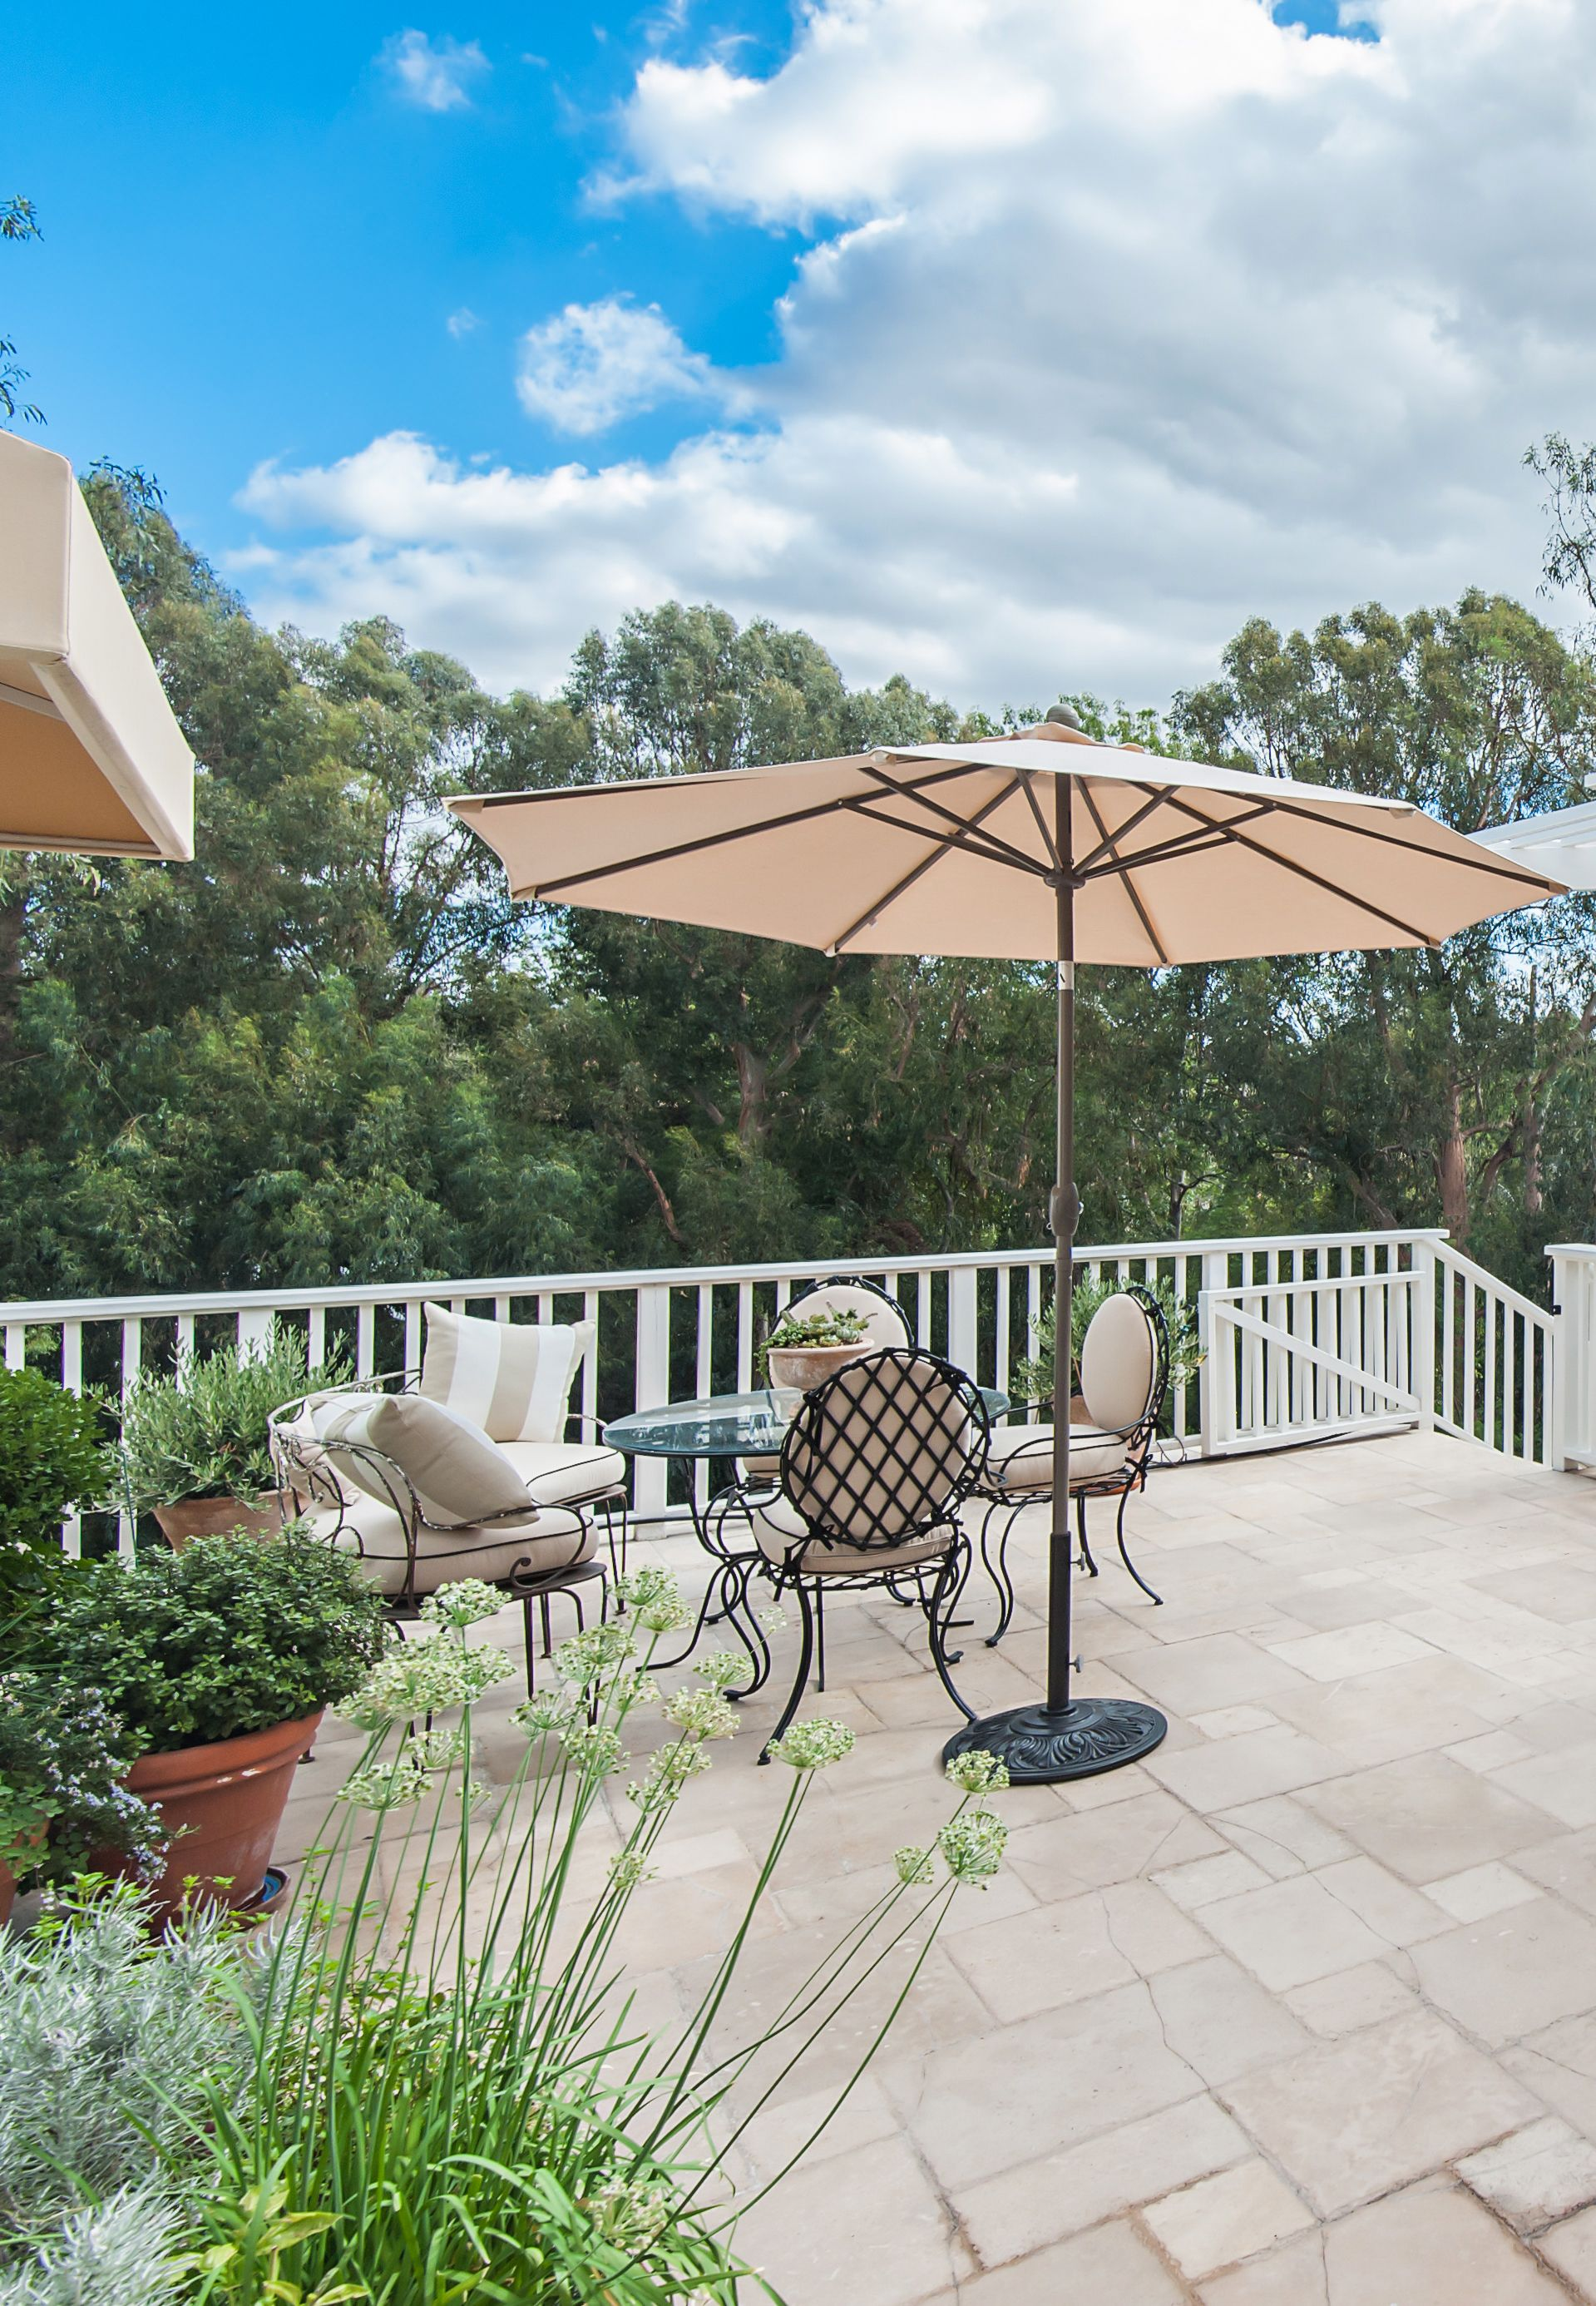 Los Angeles California Home Outdoor Patio Furniture and Sun